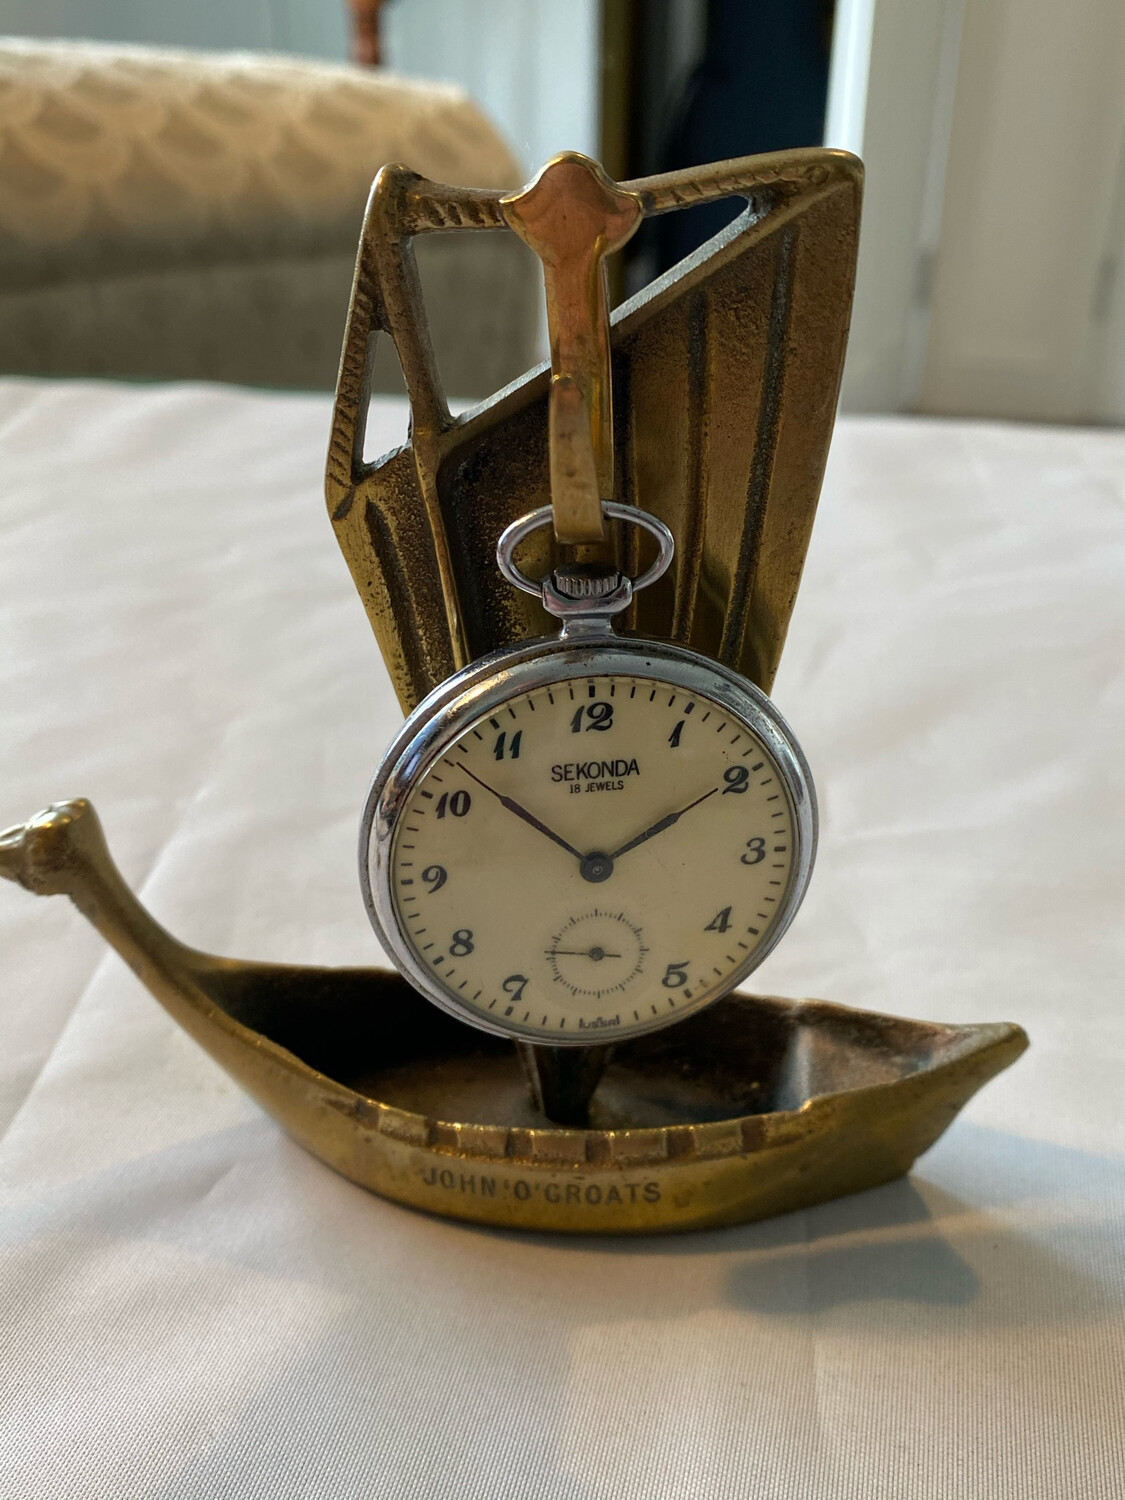 Brass pocket watch stand in style of viking boat - watch not included